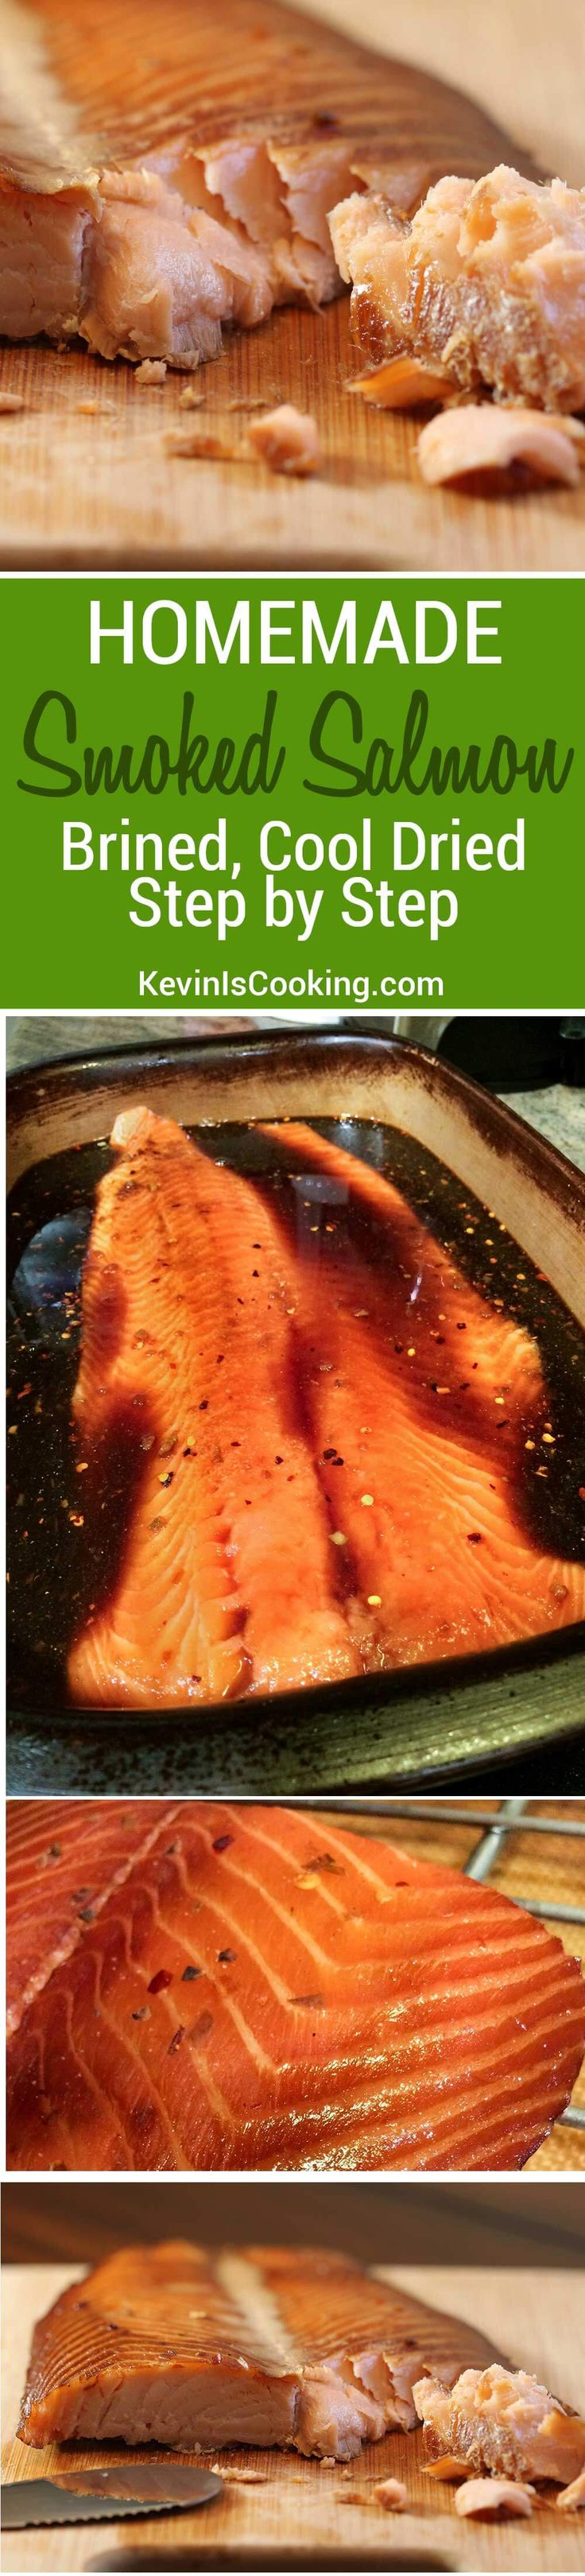 A great step by step on how to make Smoked Salmon and Brine Recipe. You'll never need purchase store bought smoked salmon again!